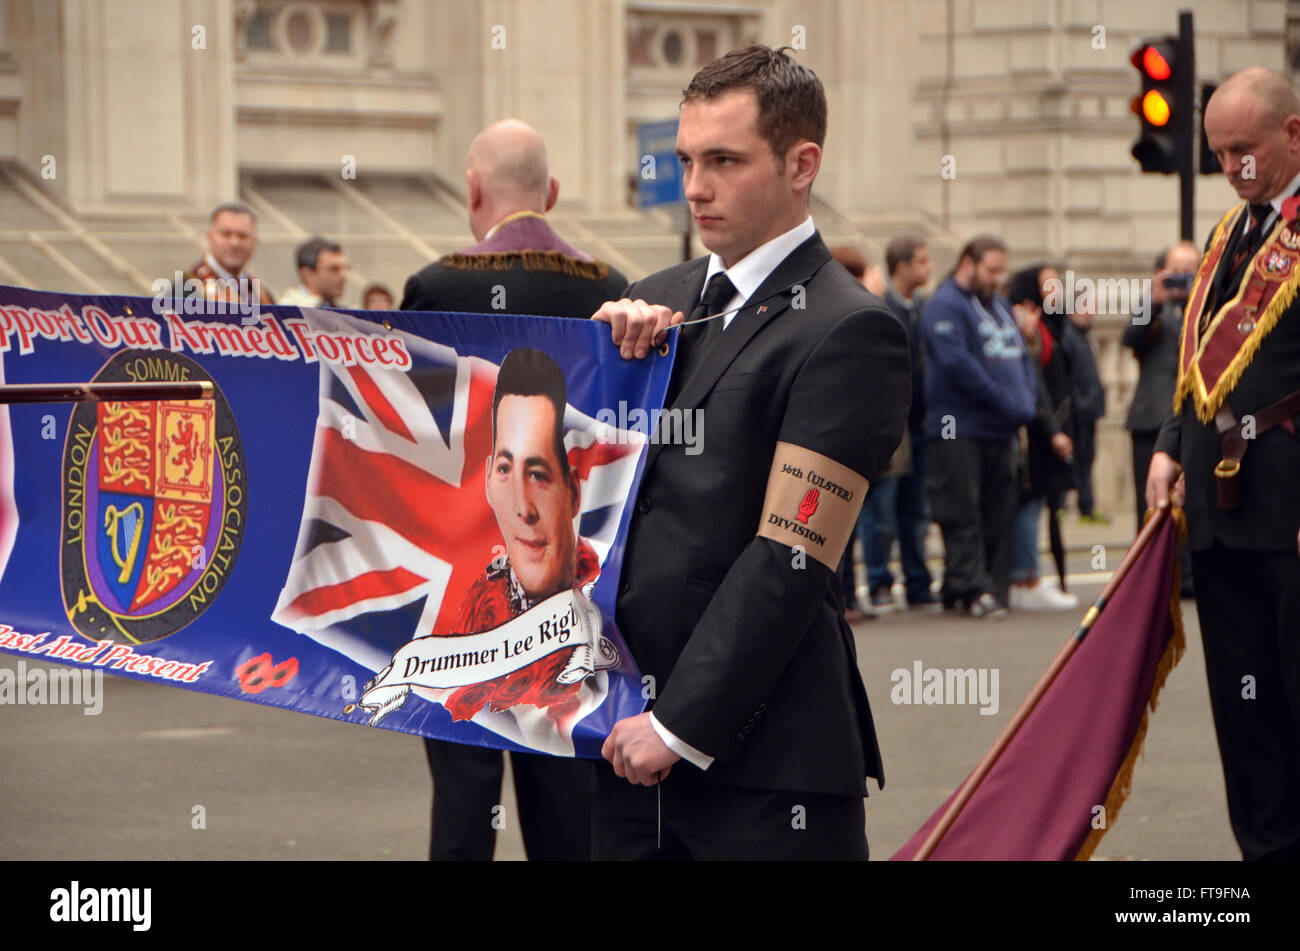 London, UK, 26 March 2016, Lord Carson 1916 Easter Irish Unionist uprising parade down Whitehall to lay wreaths - Stock Image